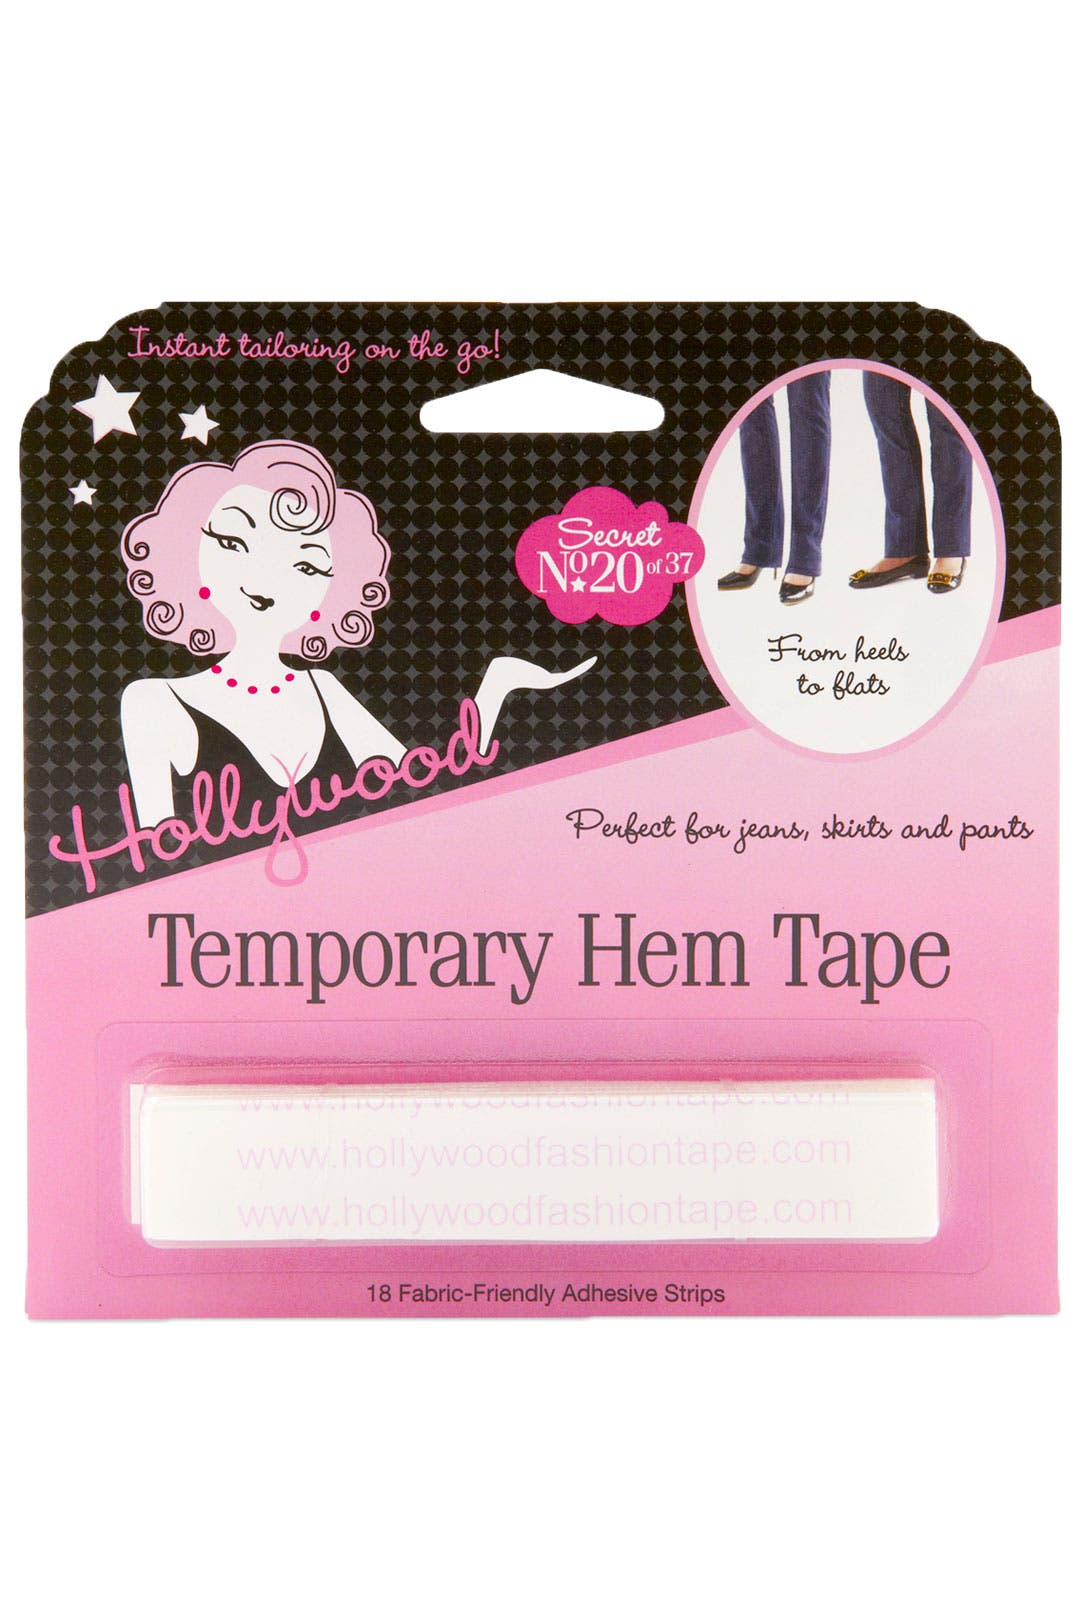 Temporary Hem Tape Strips by Hollywood Fashion Tape